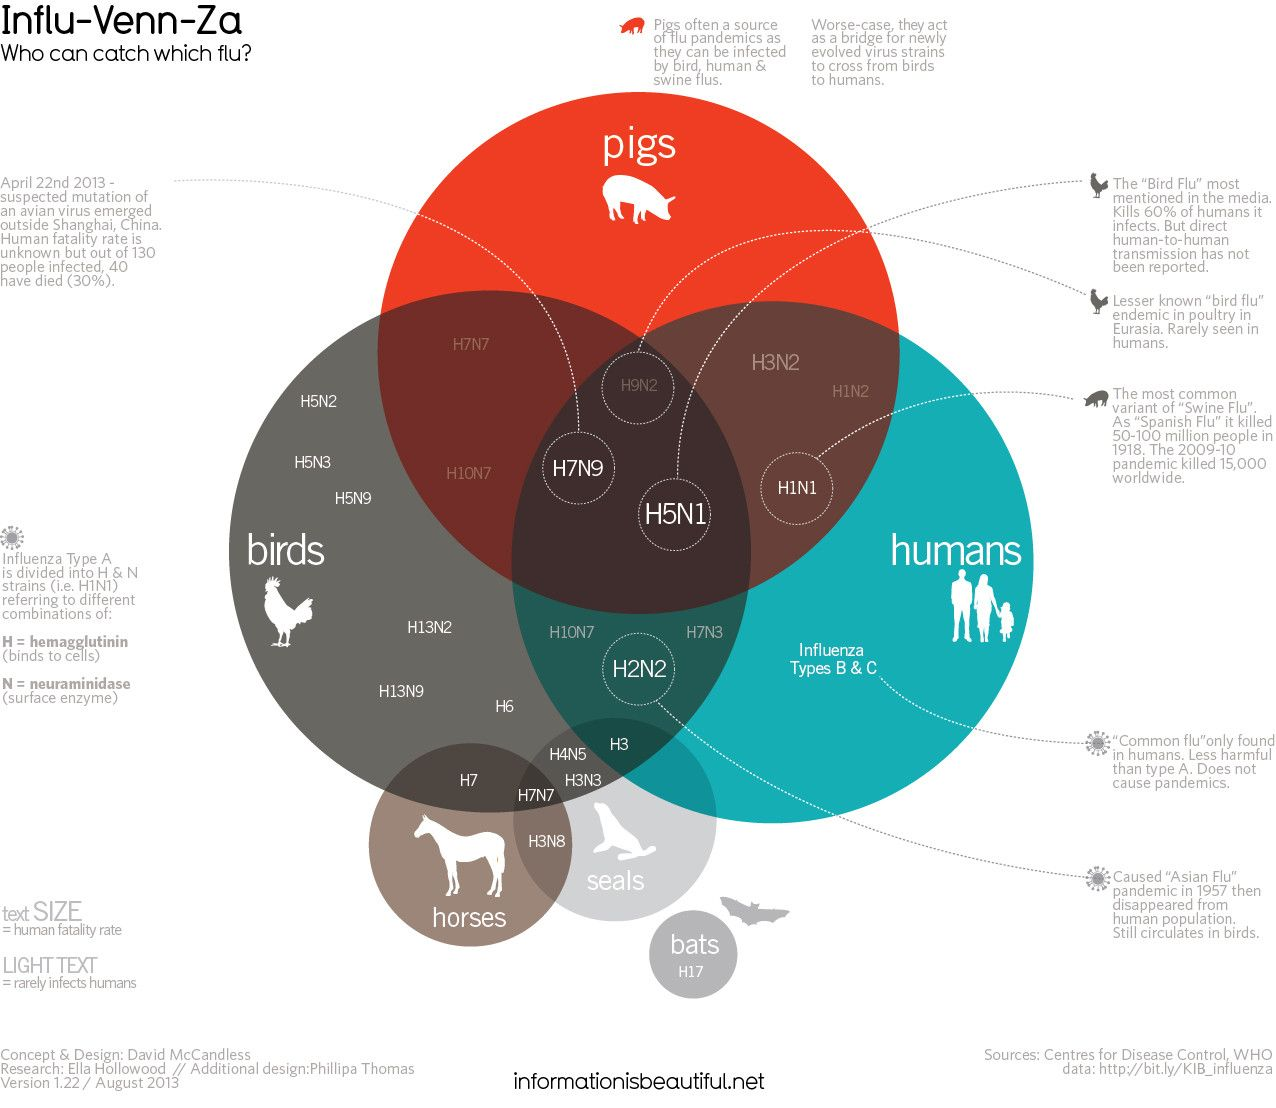 Who can catch which flu early detection and recovery human flu viruses this cleverly constructed and expertly named influ venn za chart analyses the different strains of animal and human flu viruses and t pooptronica Images